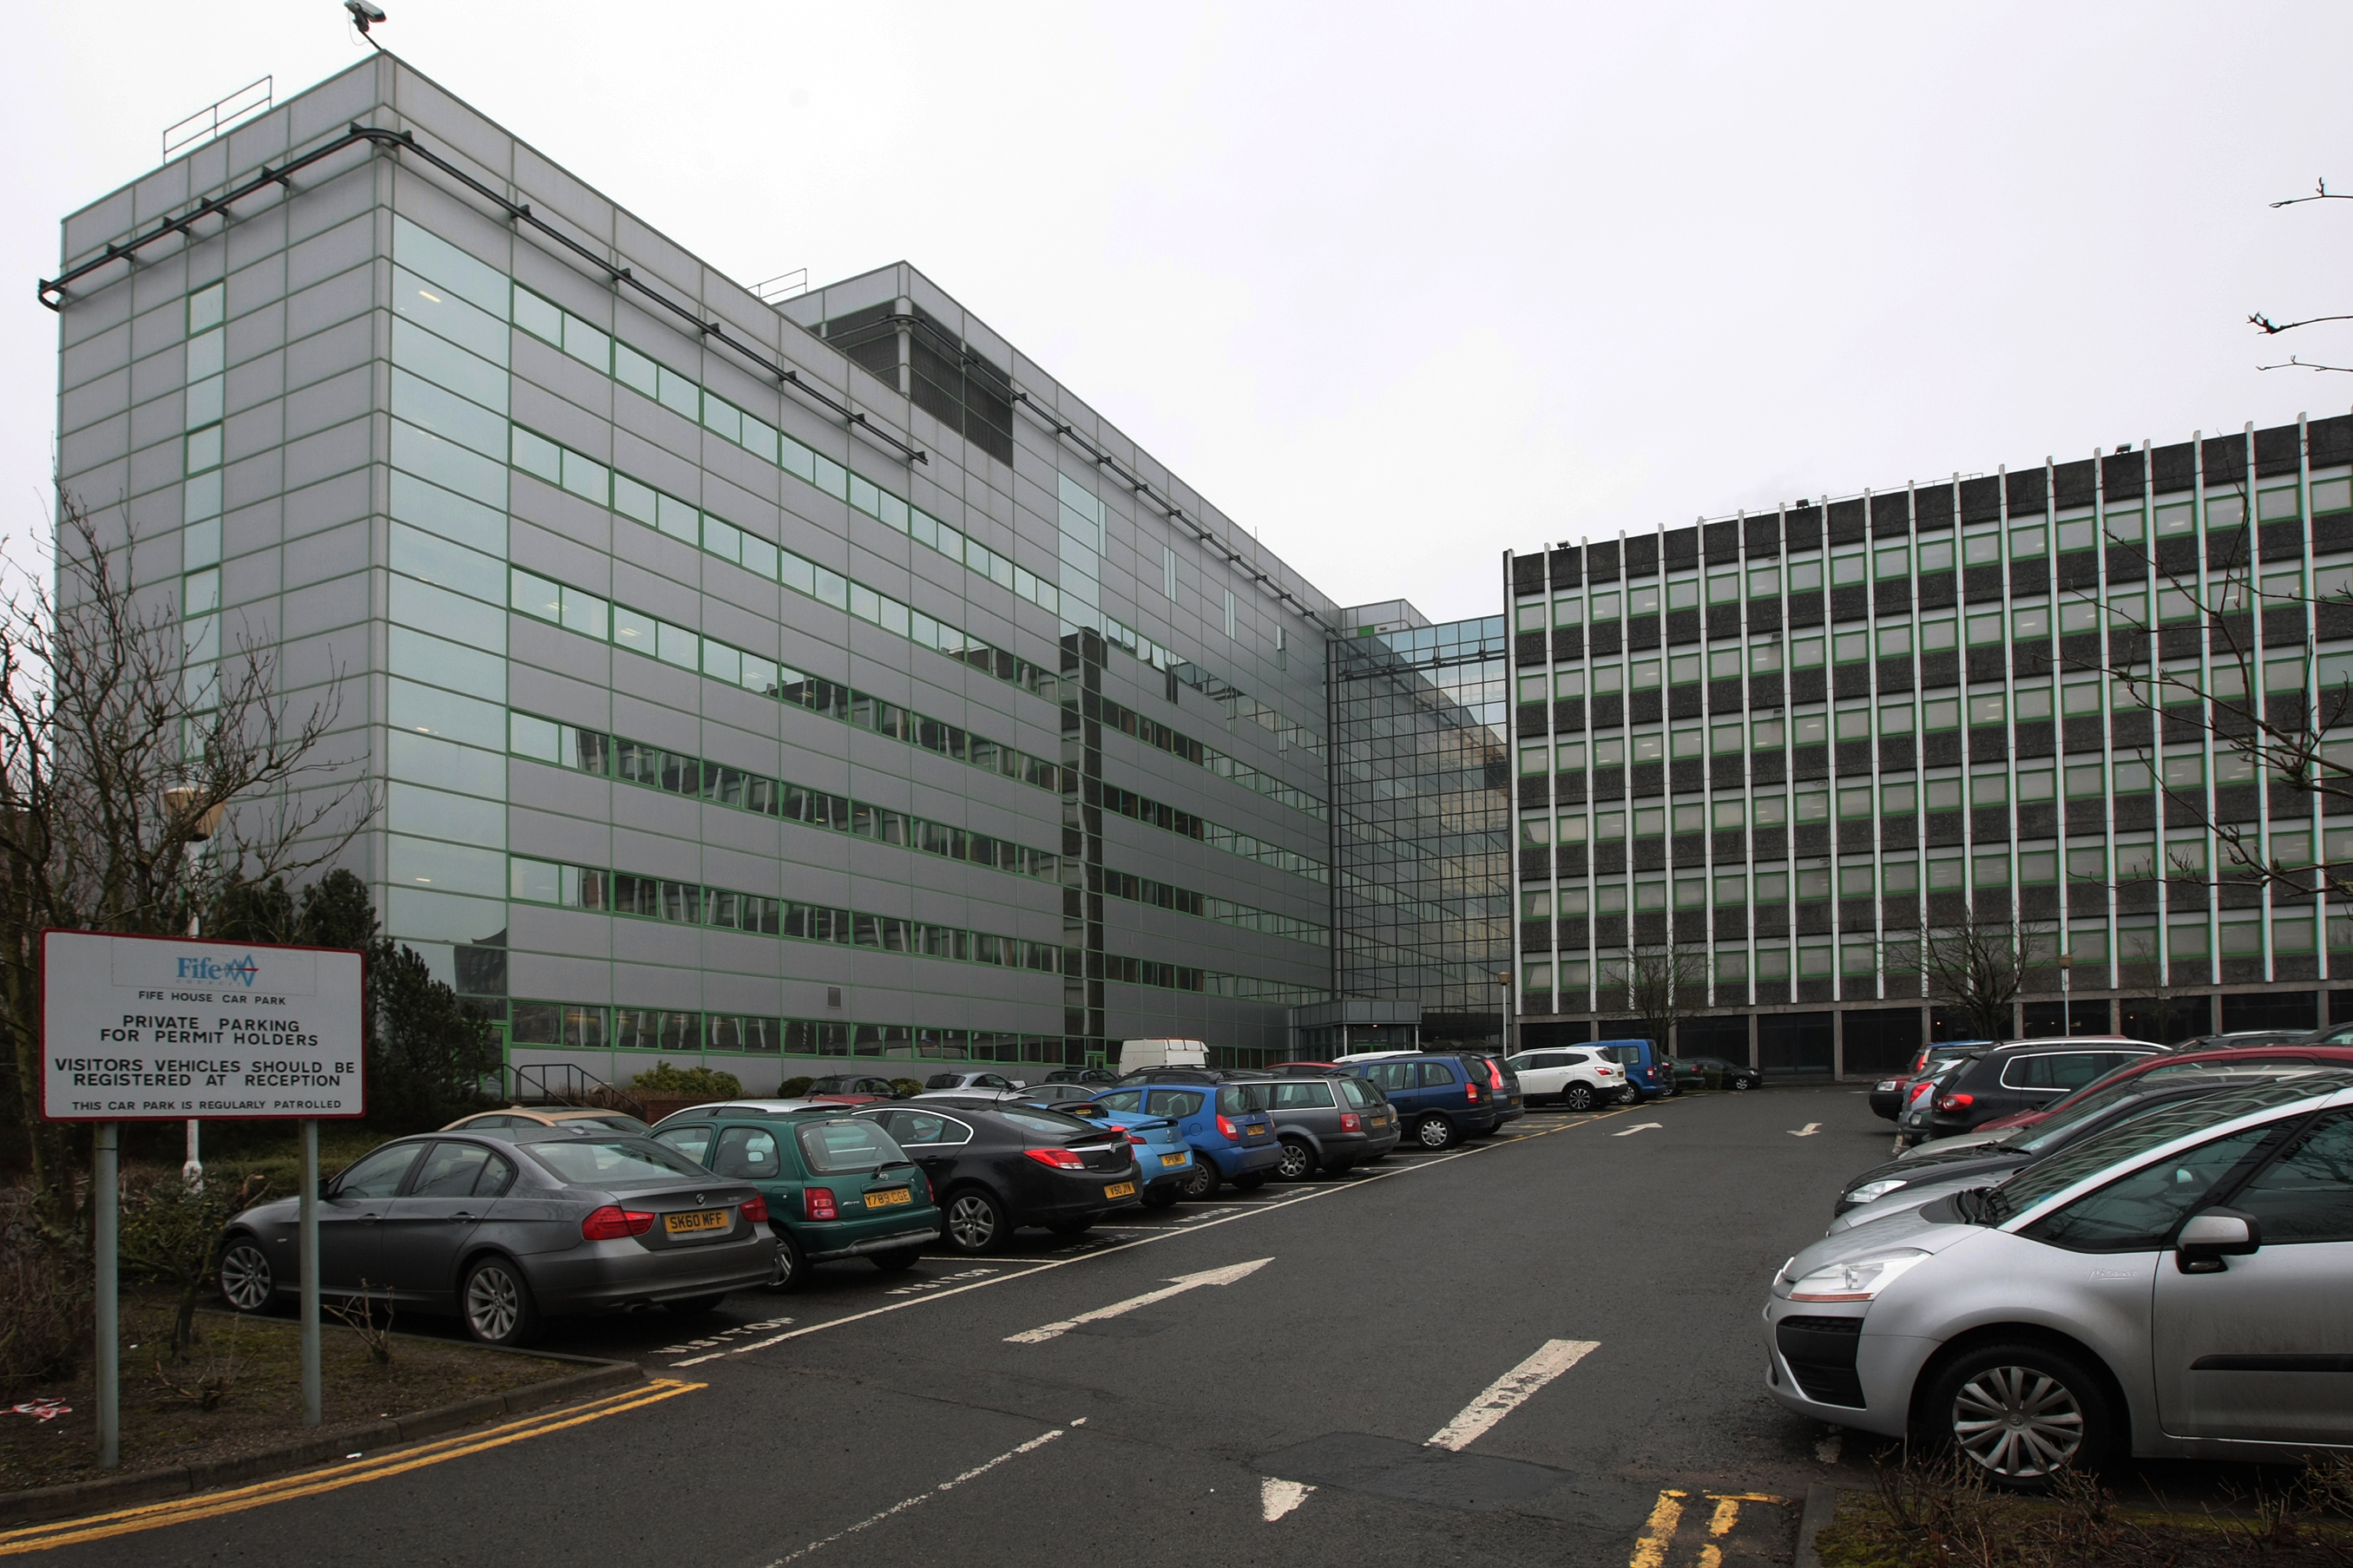 Fife House in Glenrothes, where Fife's budget for the coming year was set this week.